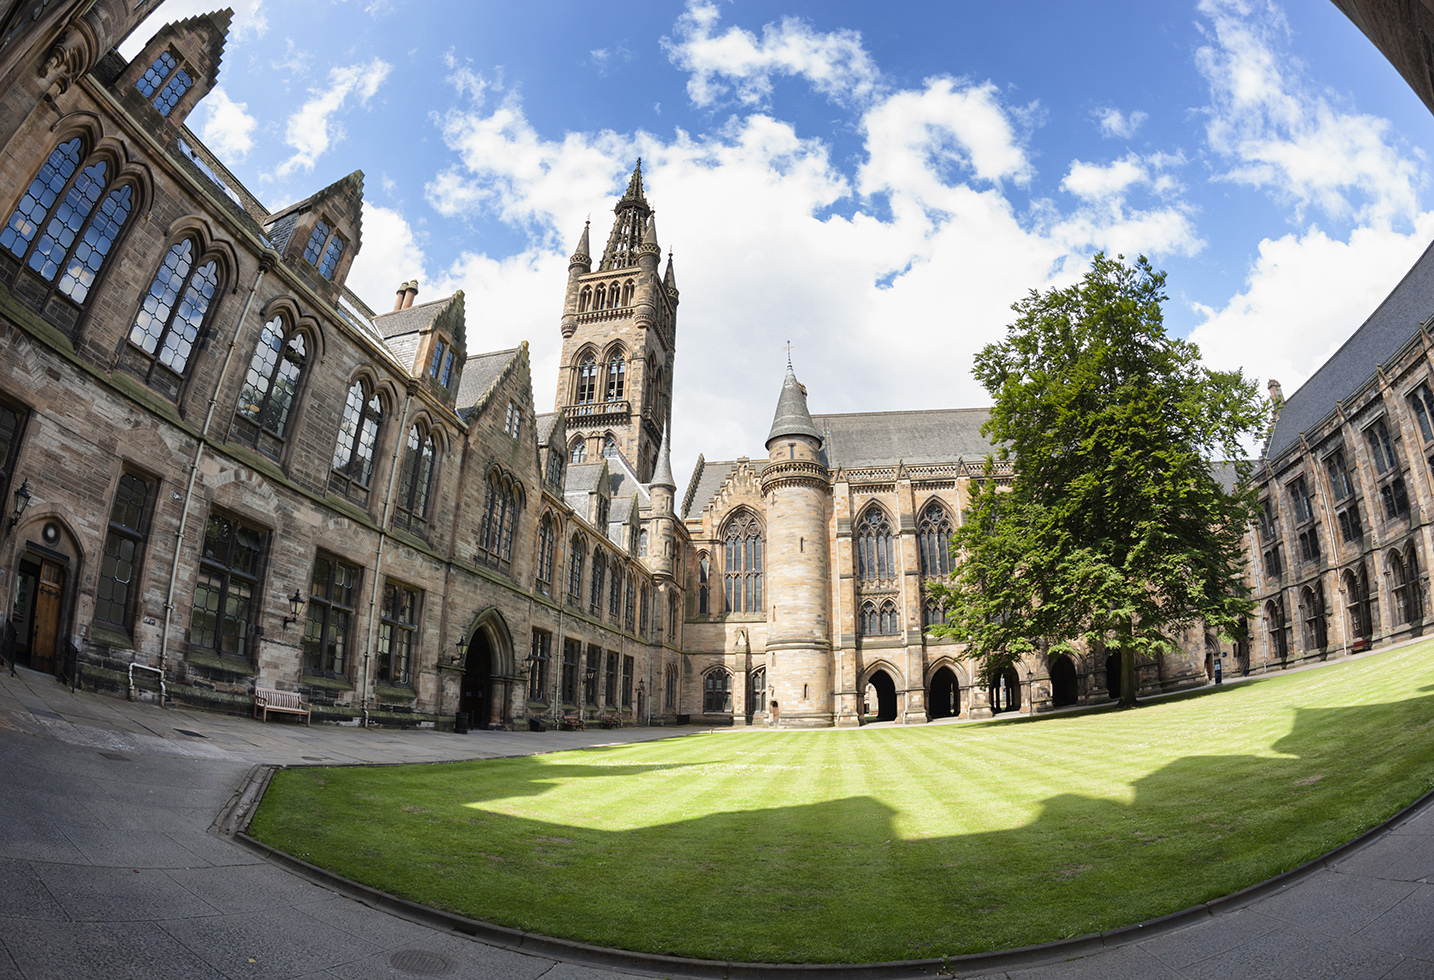 Glasgow University's bell tower - a Glasgow landmark built in the 1870s in the Gothic revival style.  Designed by Sir George Gilbert Scott.Viewed from inside the East Quadrangle. Shot with a fisheye lens.